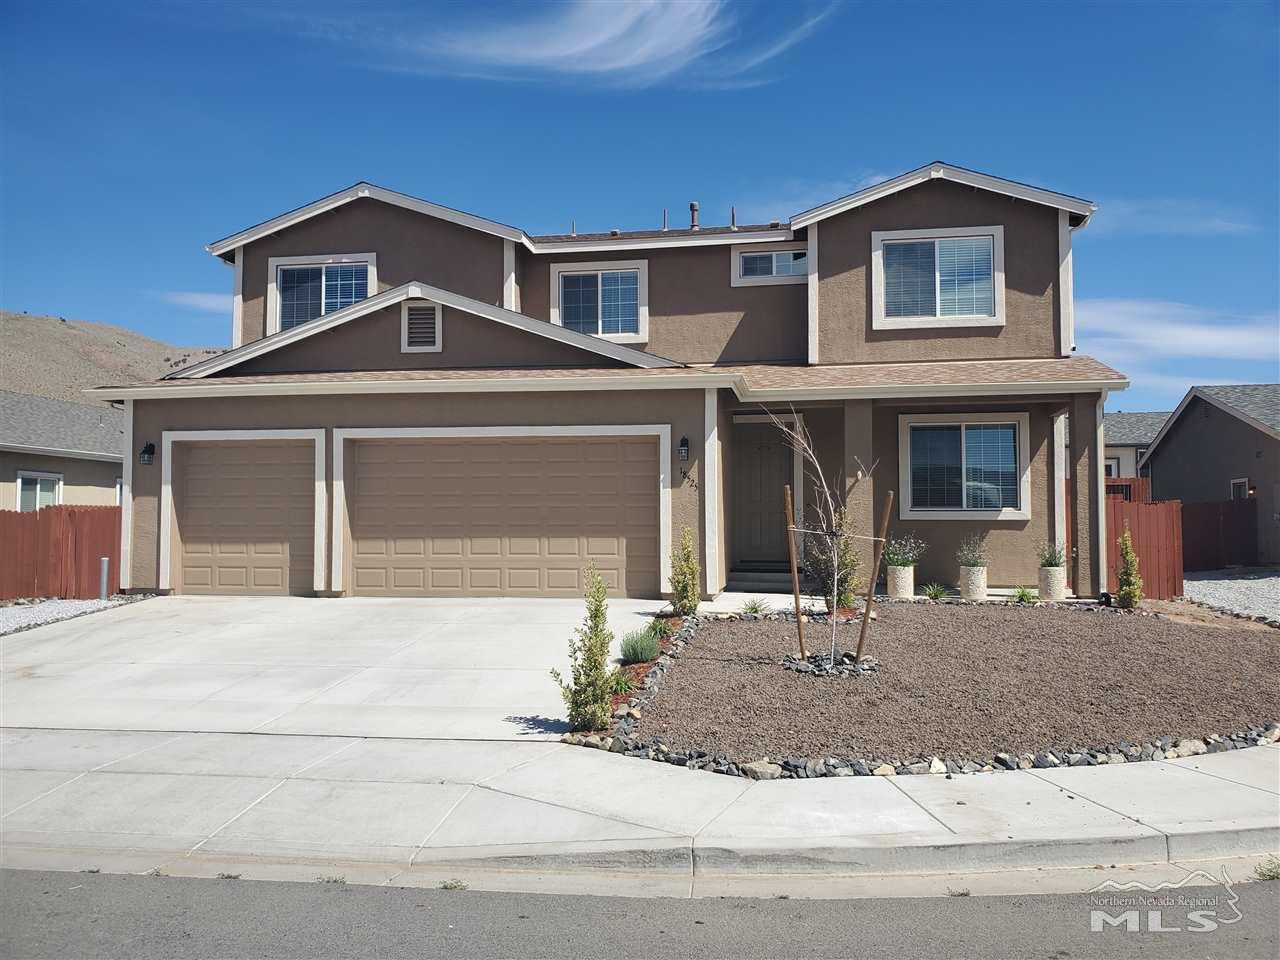 Image for 18525 Mountain Ash, Reno, NV 89506